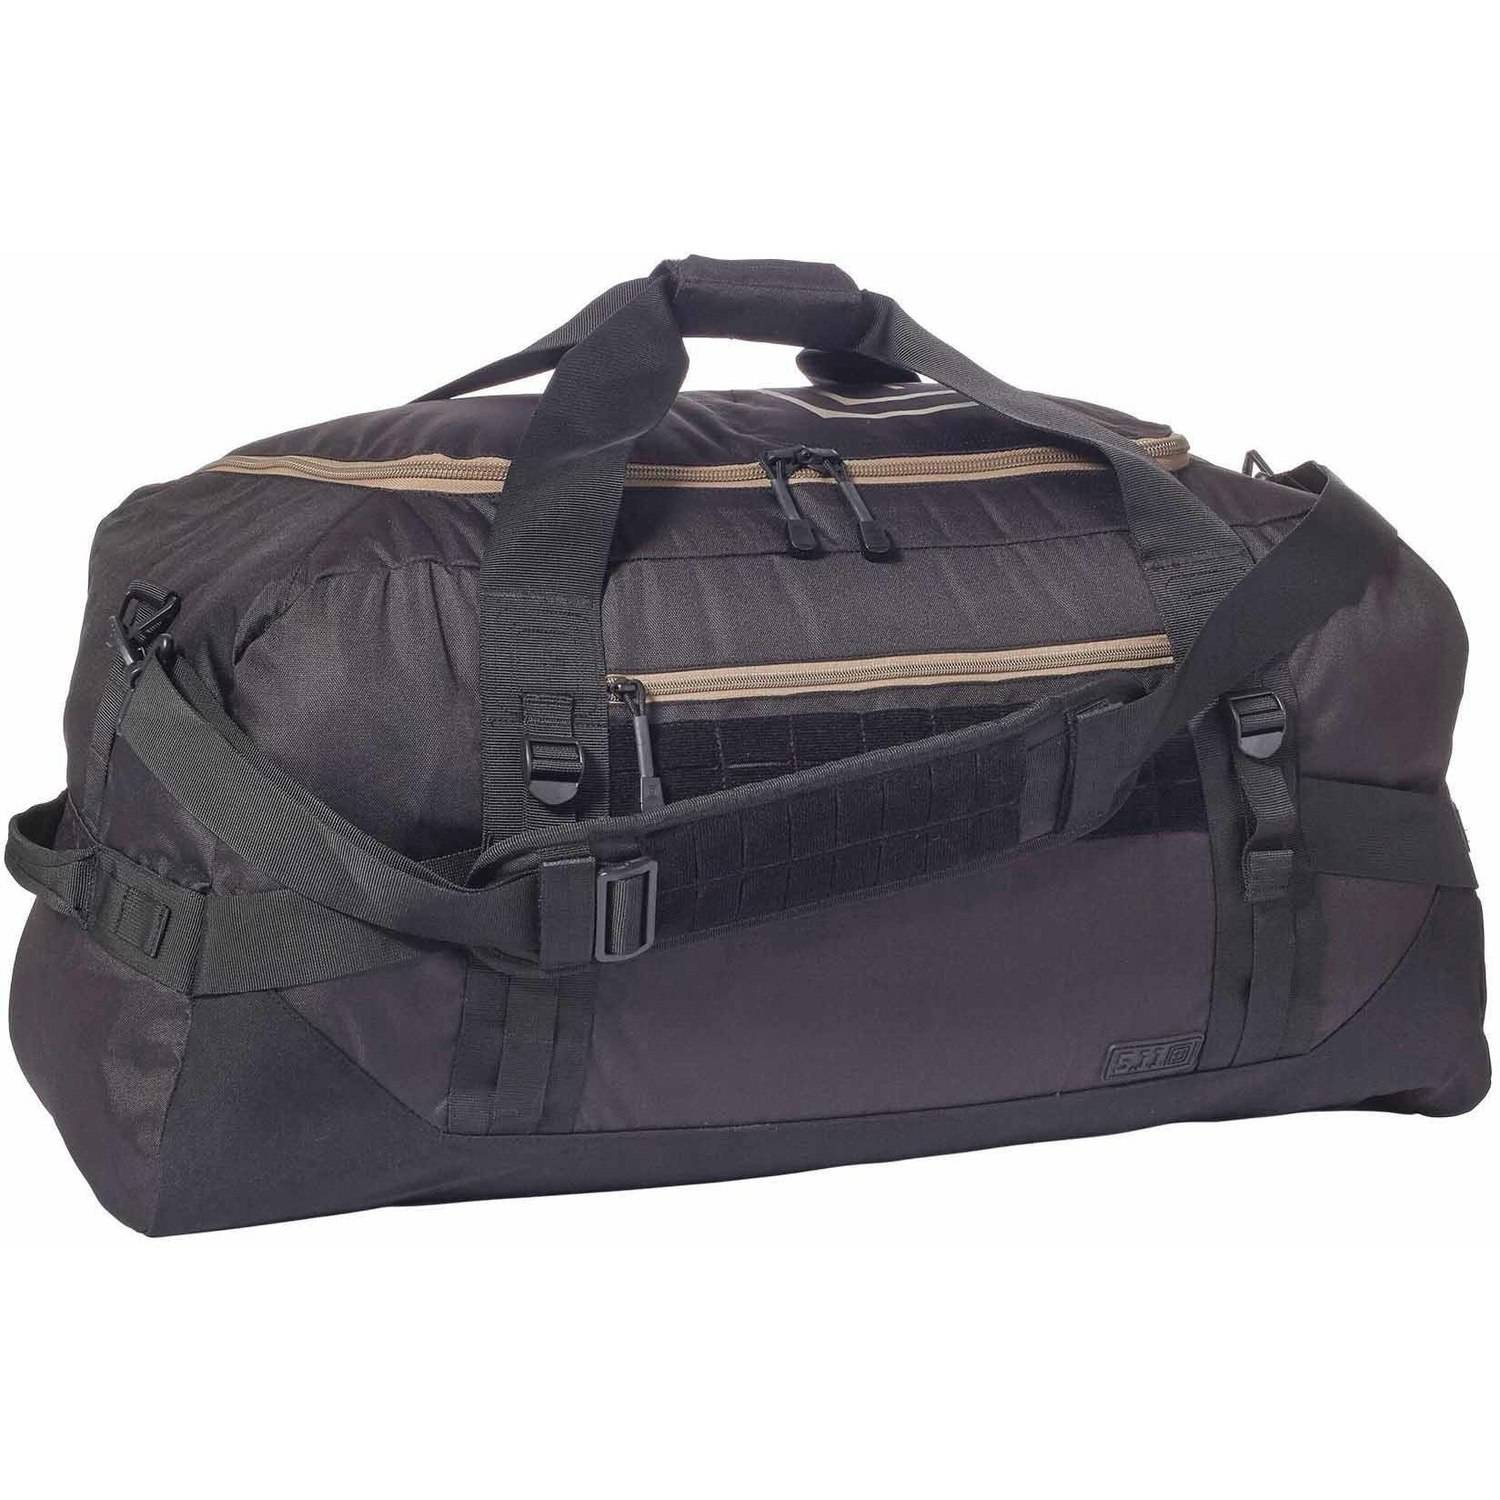 5.11 Tactical NBT Duffle Bag X-Ray by 5.11 Tactical